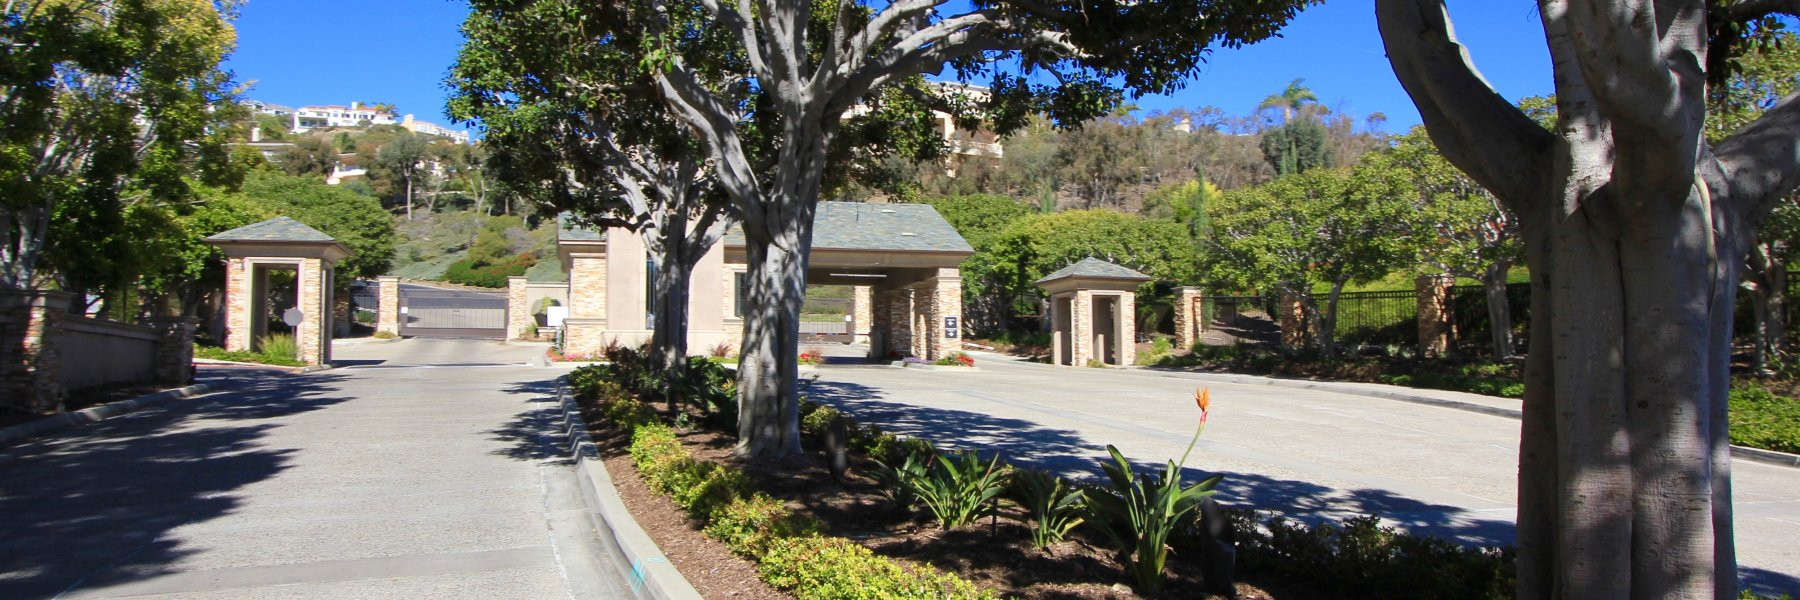 Sea Pointe Estates is a gated community of homes in San Clemente